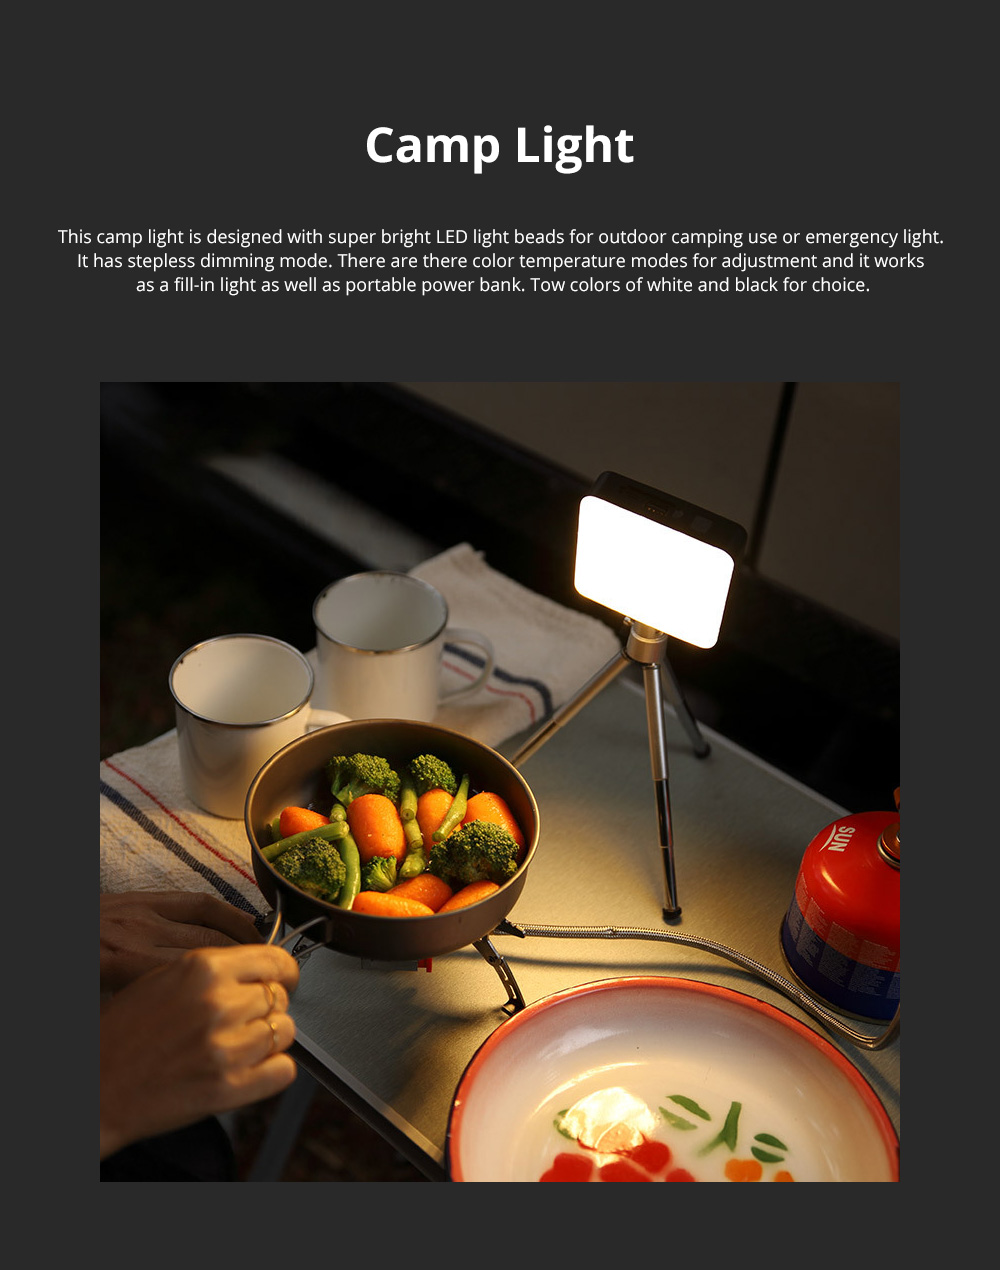 Naturehike Super Bright LED Lamp Camp Lantern for Outdoors Camping Portable Emergency Light Rechargeable Hand Carry LED Light 0